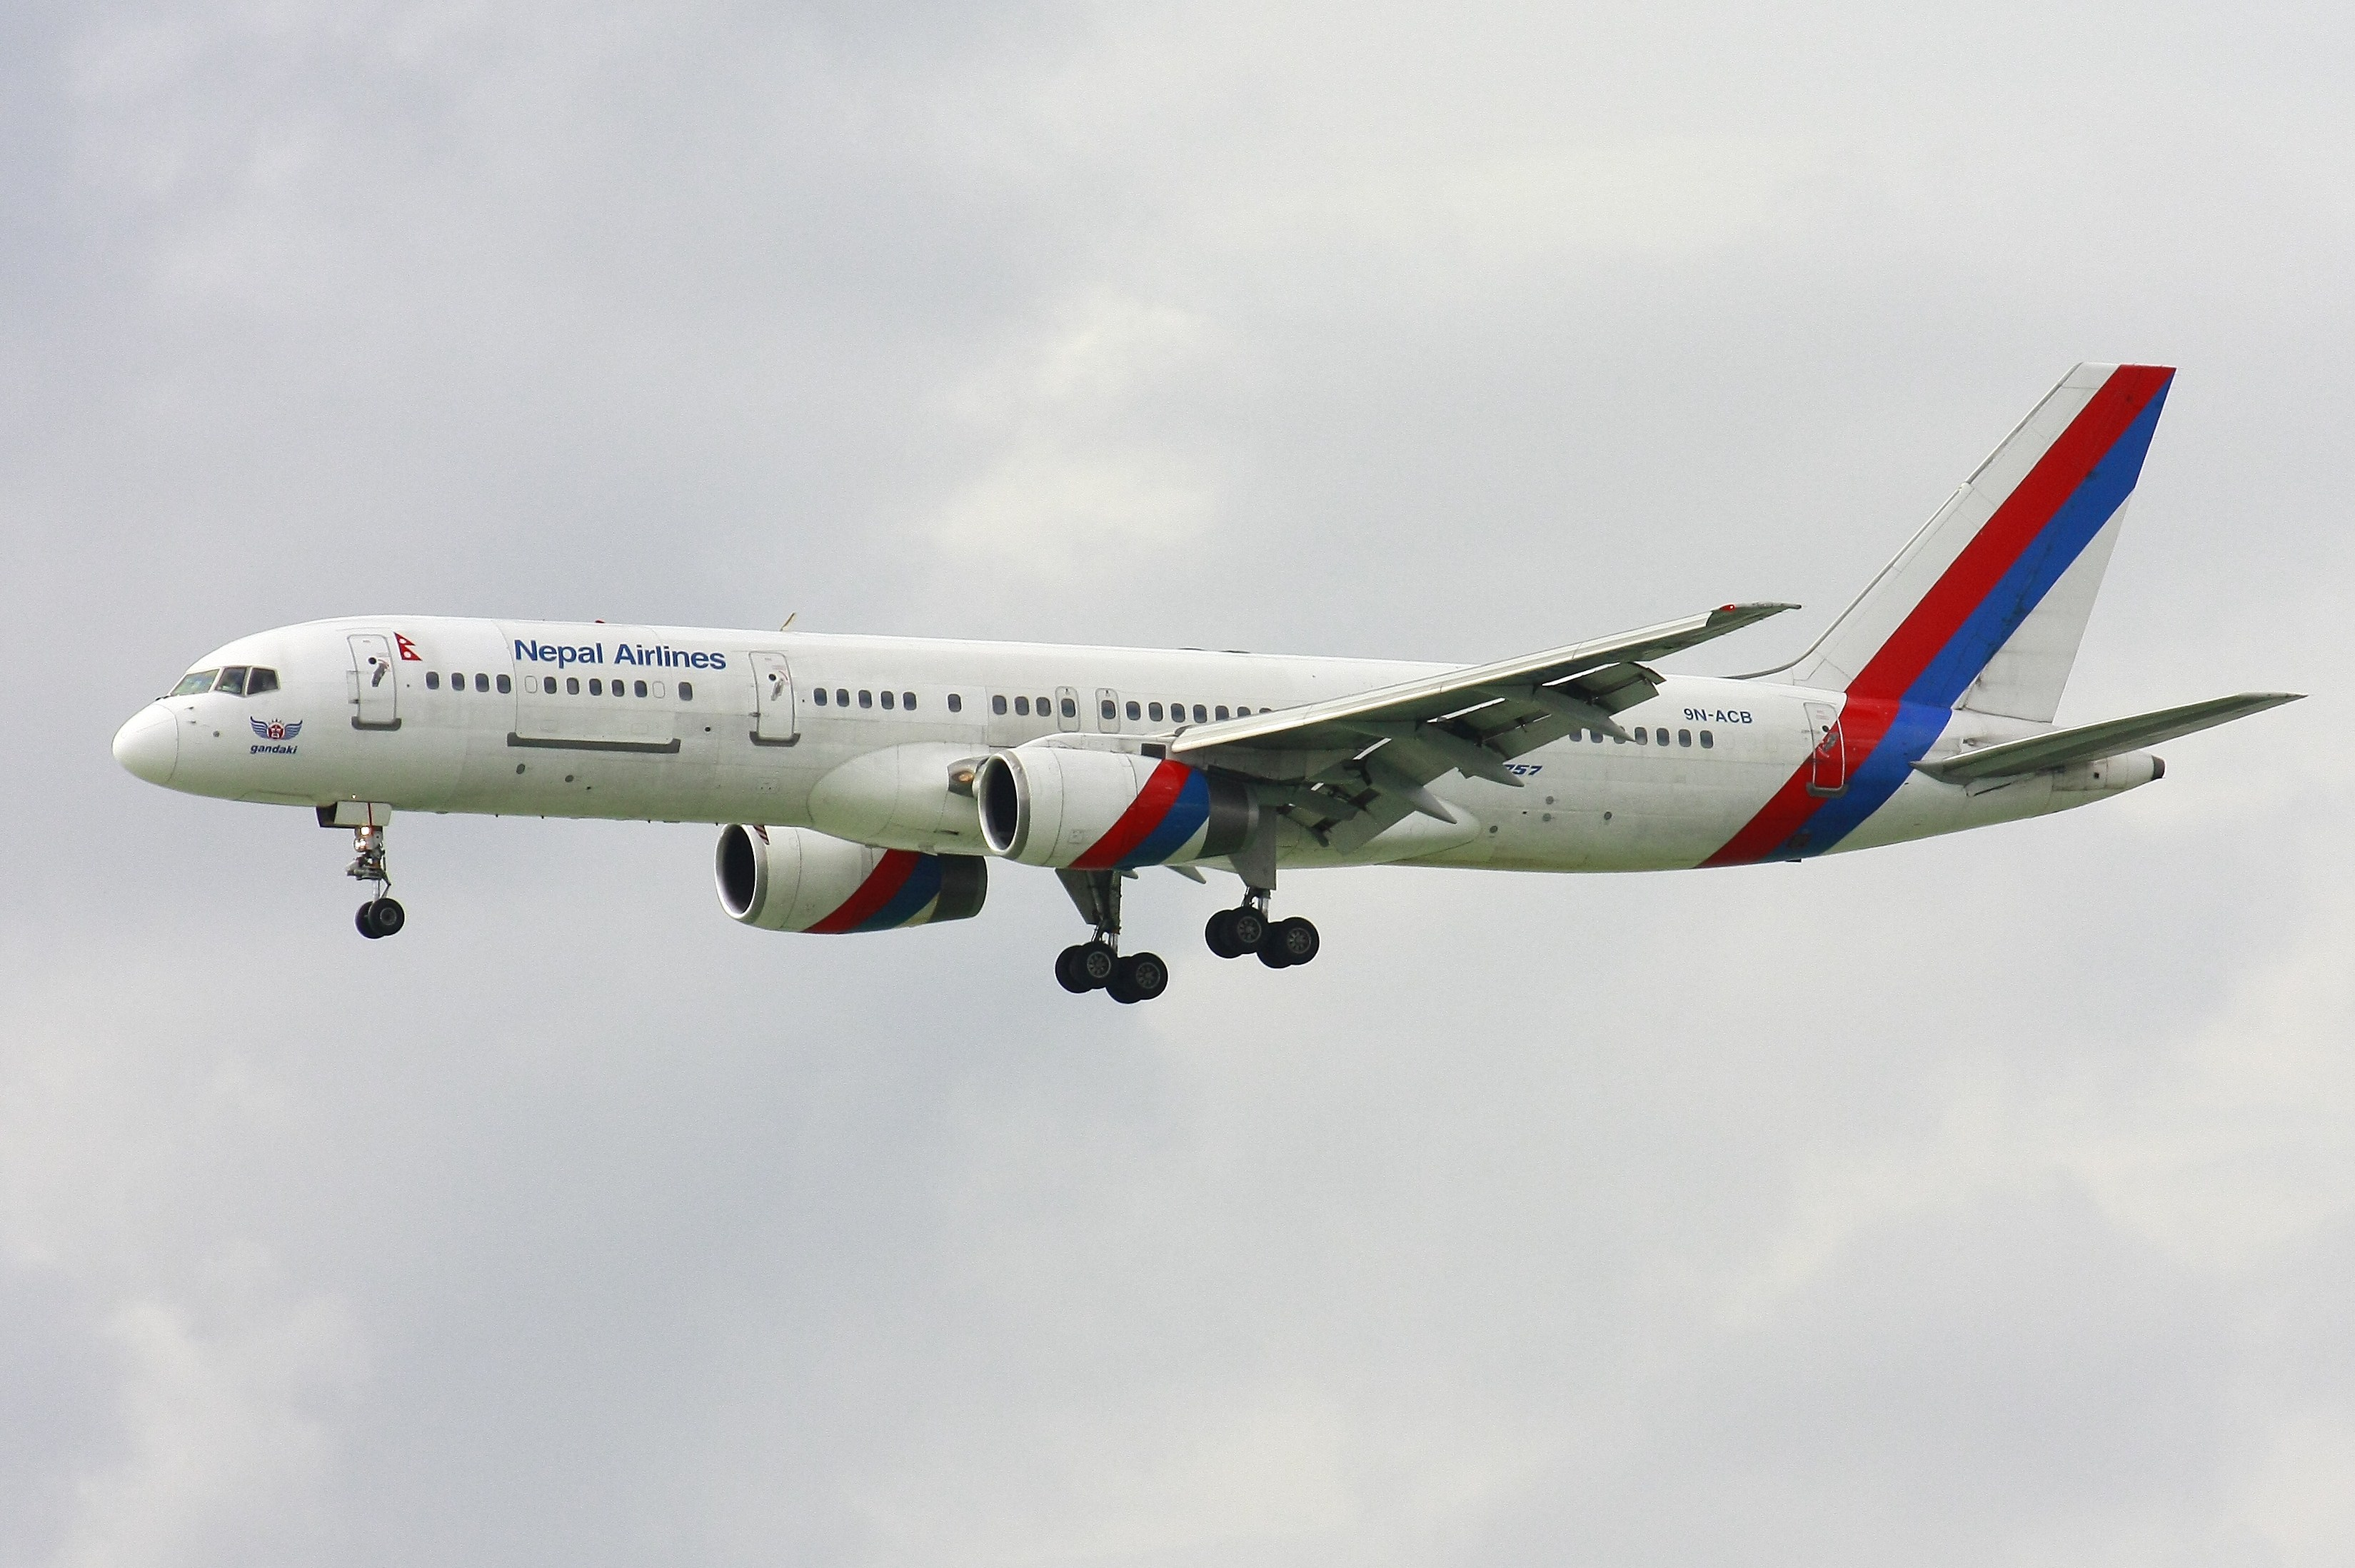 Nepal Airlines B757